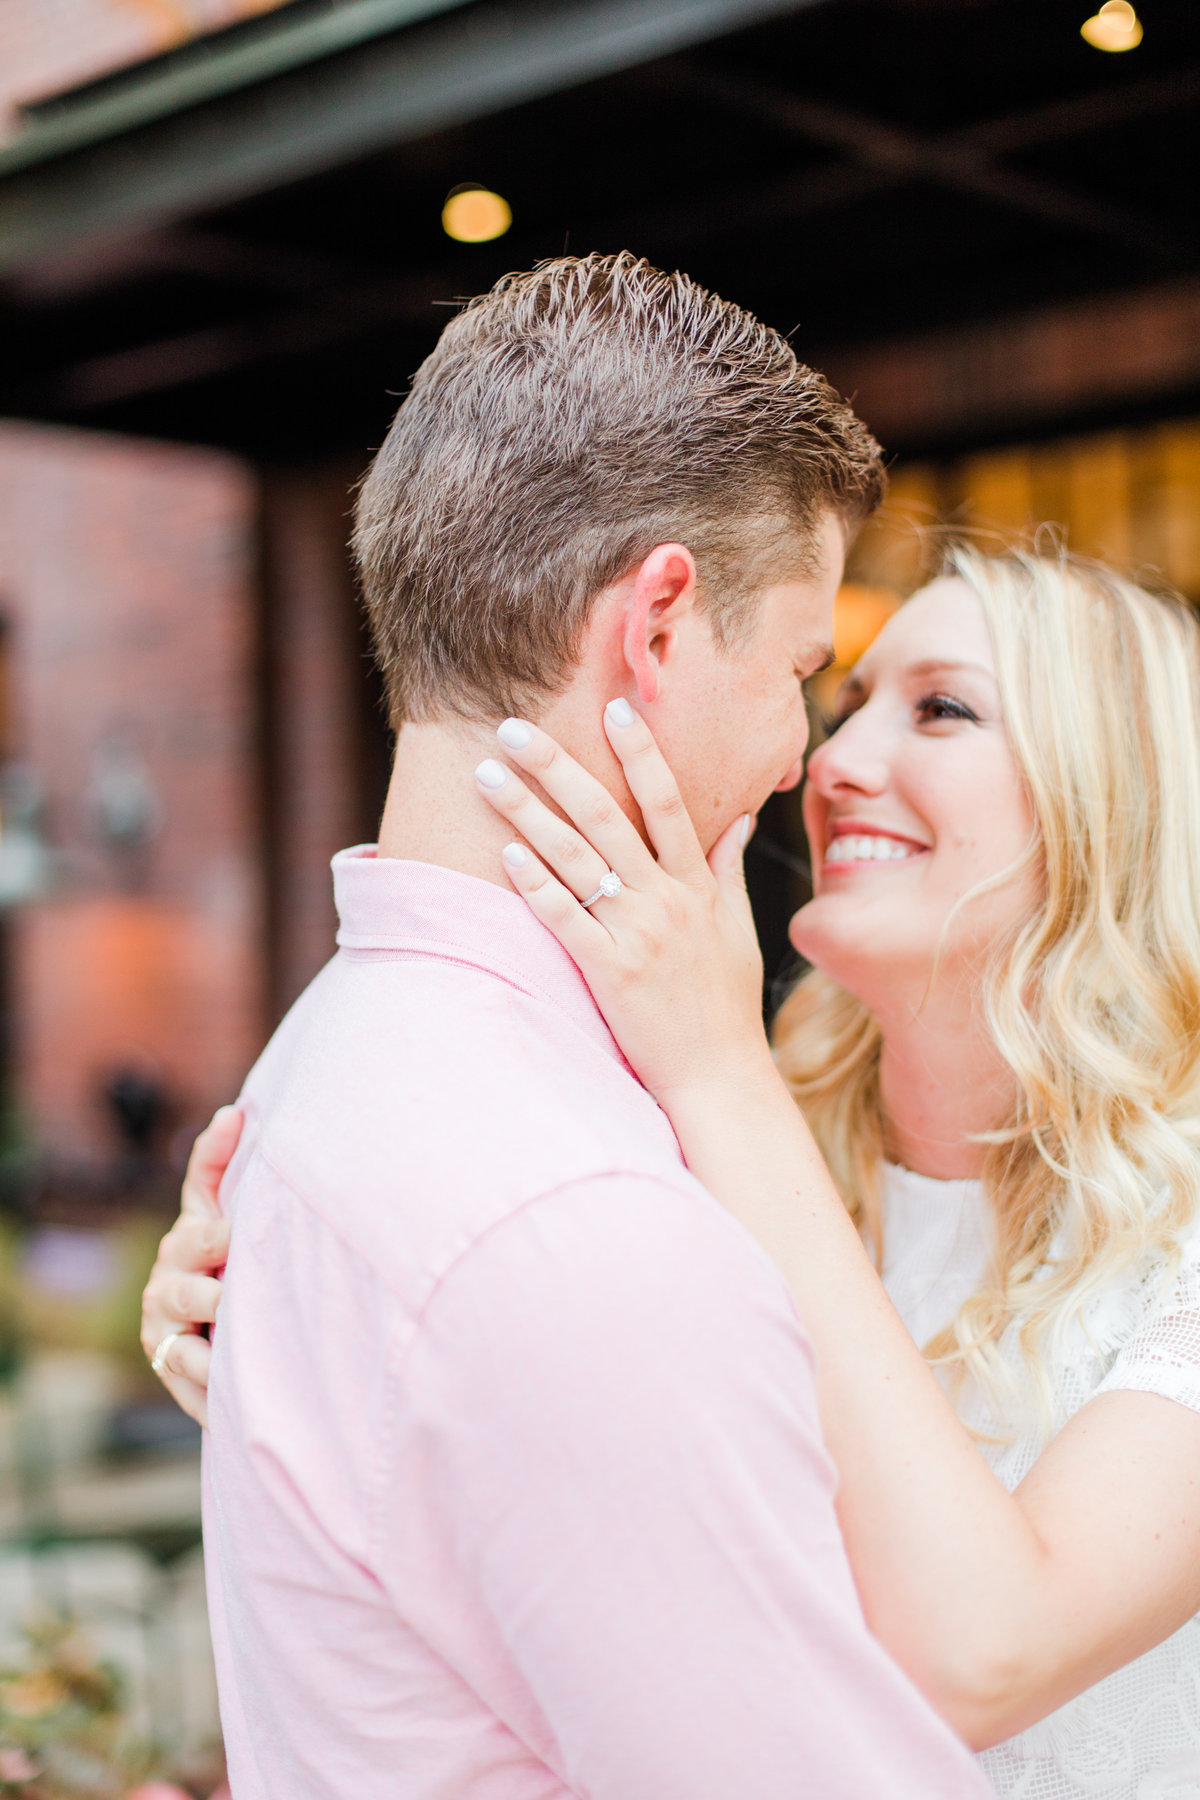 Pearl Stable Hotel Emma Engagement Session by San Antonio Wedding Photographer Allison Jeffers_2